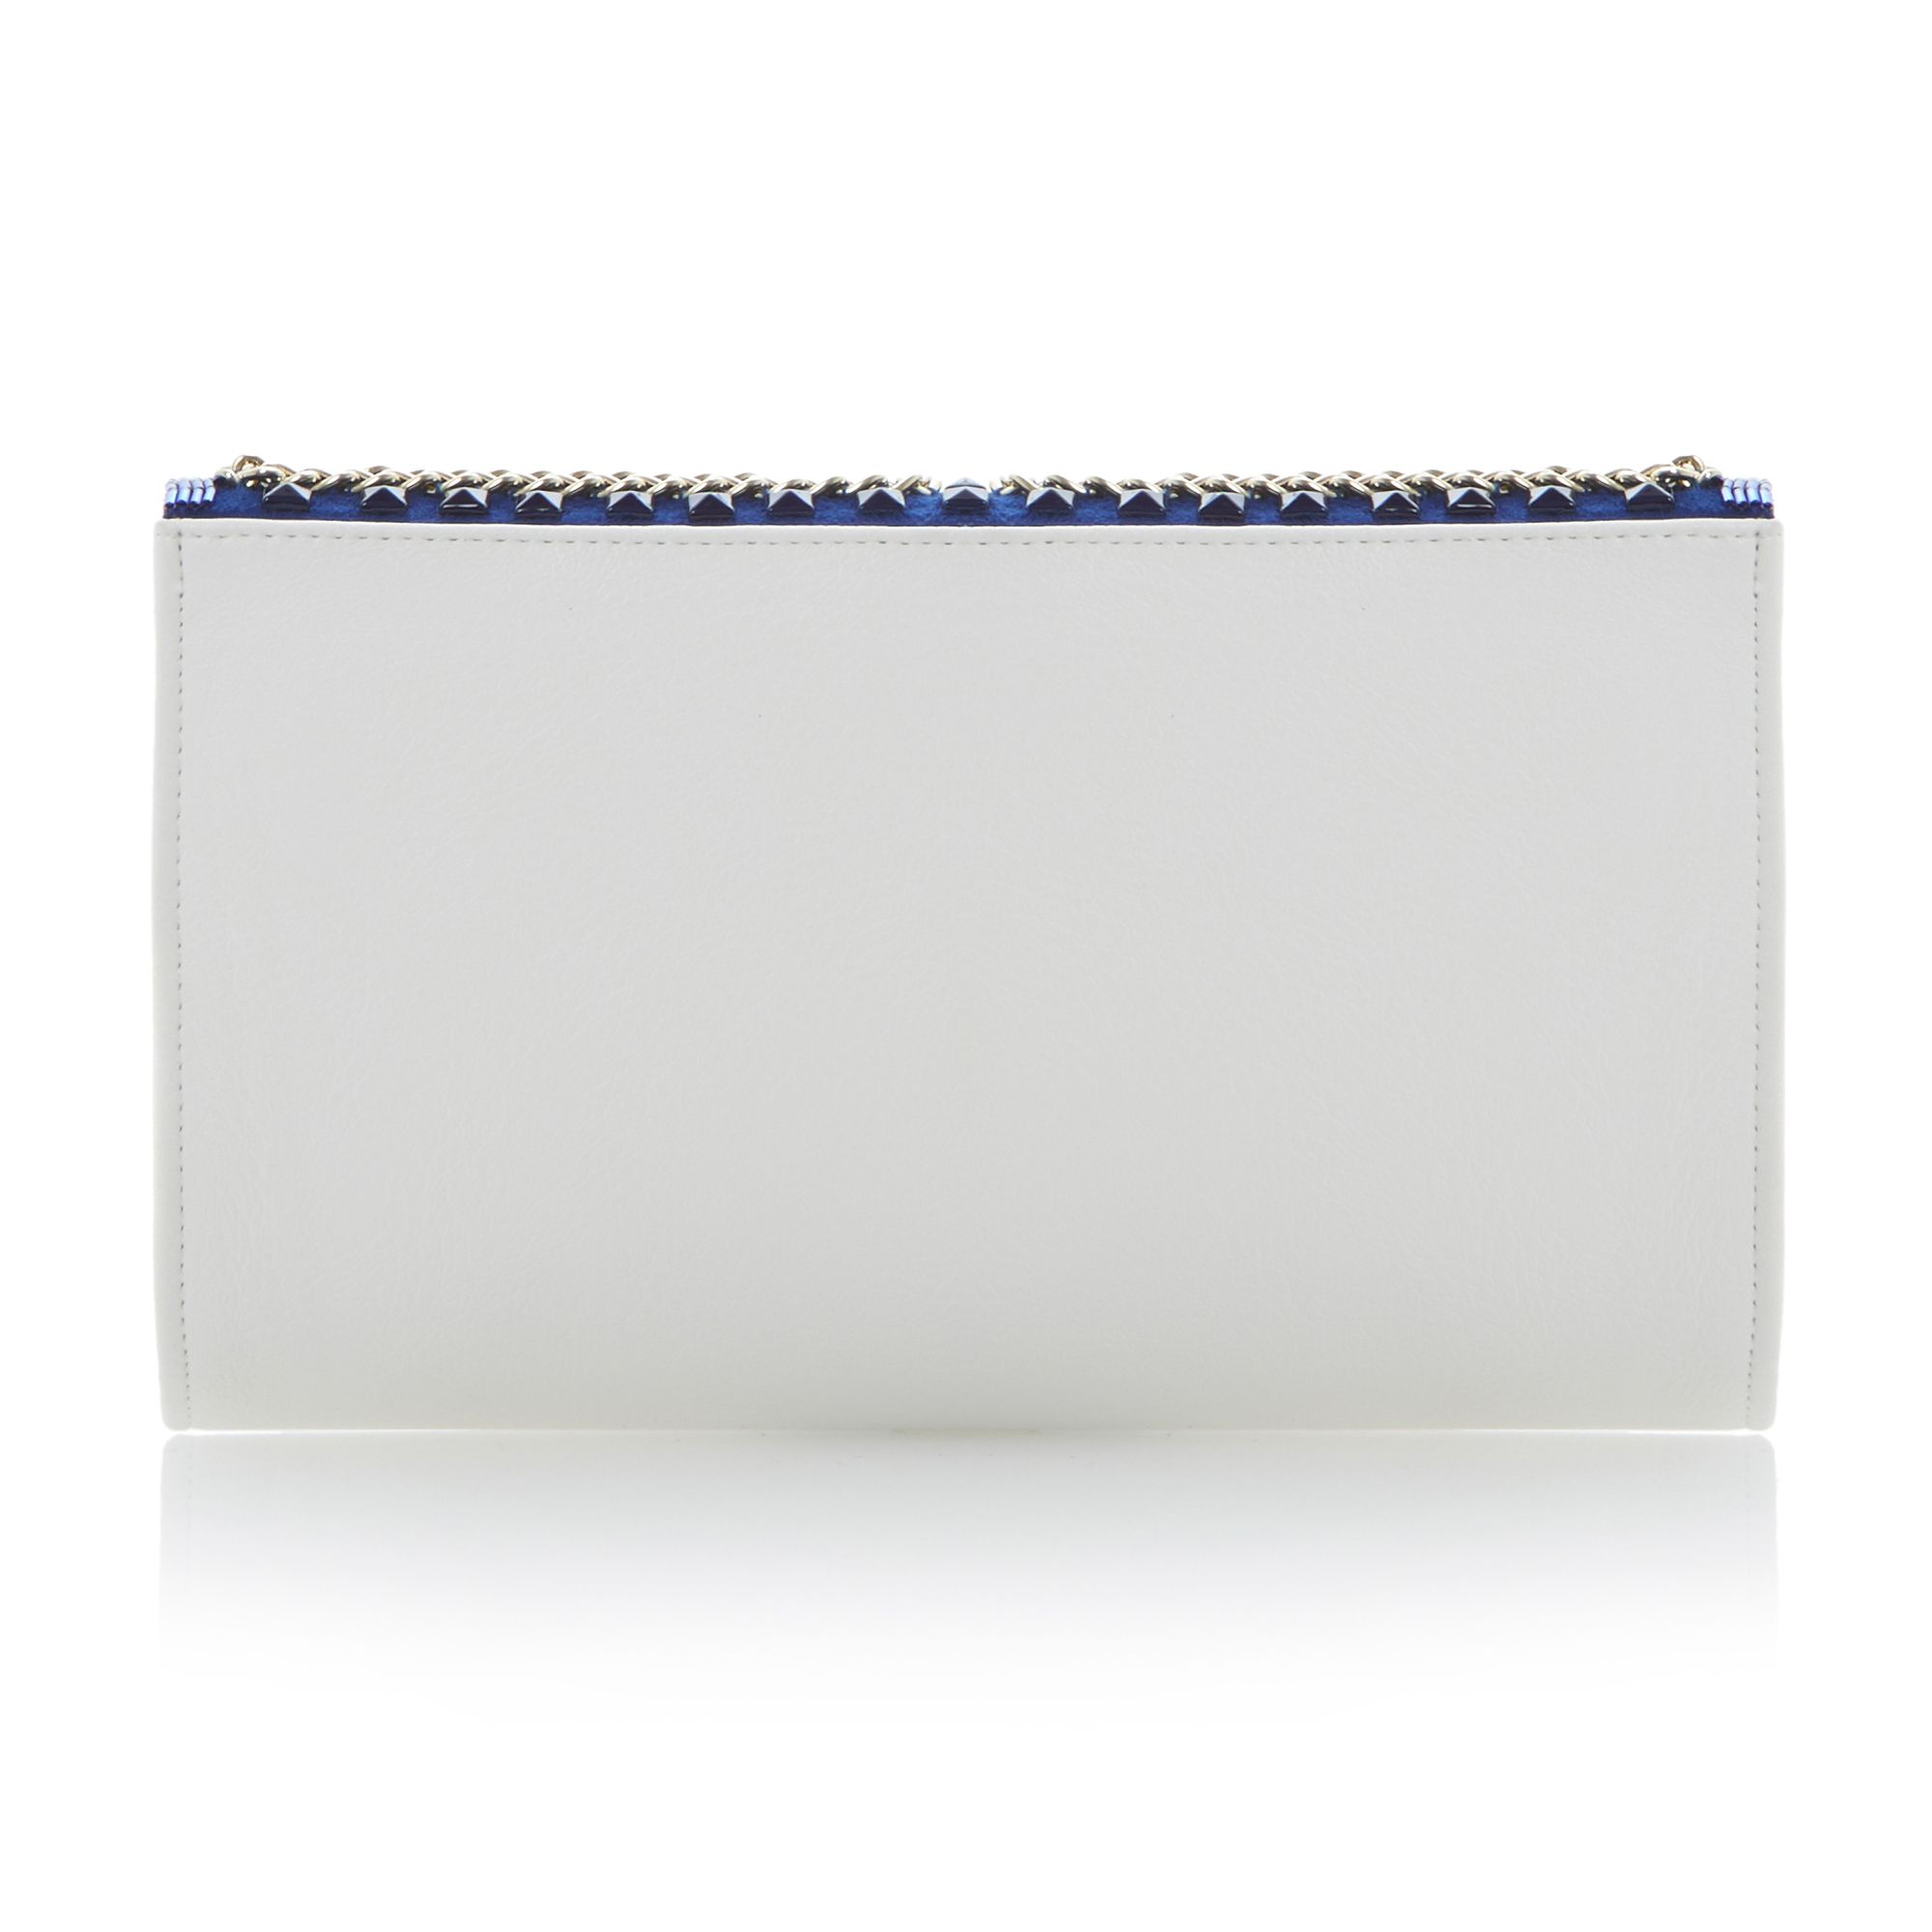 Eaded stud chain beaded clutch bag